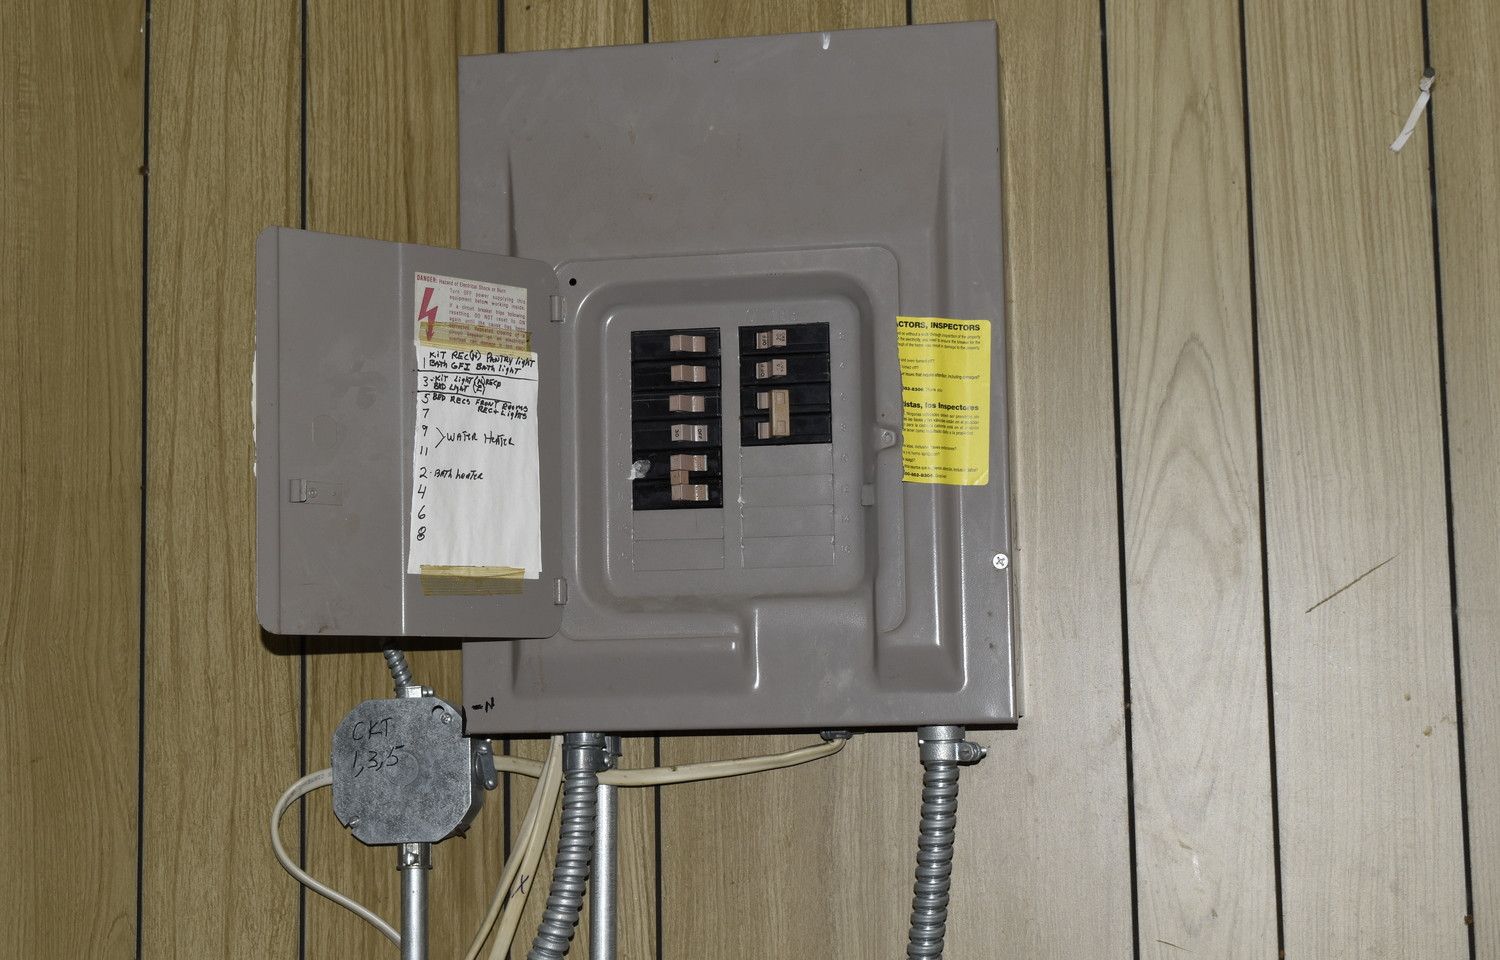 11.0 Apartment 1 Electric Panel.jpg